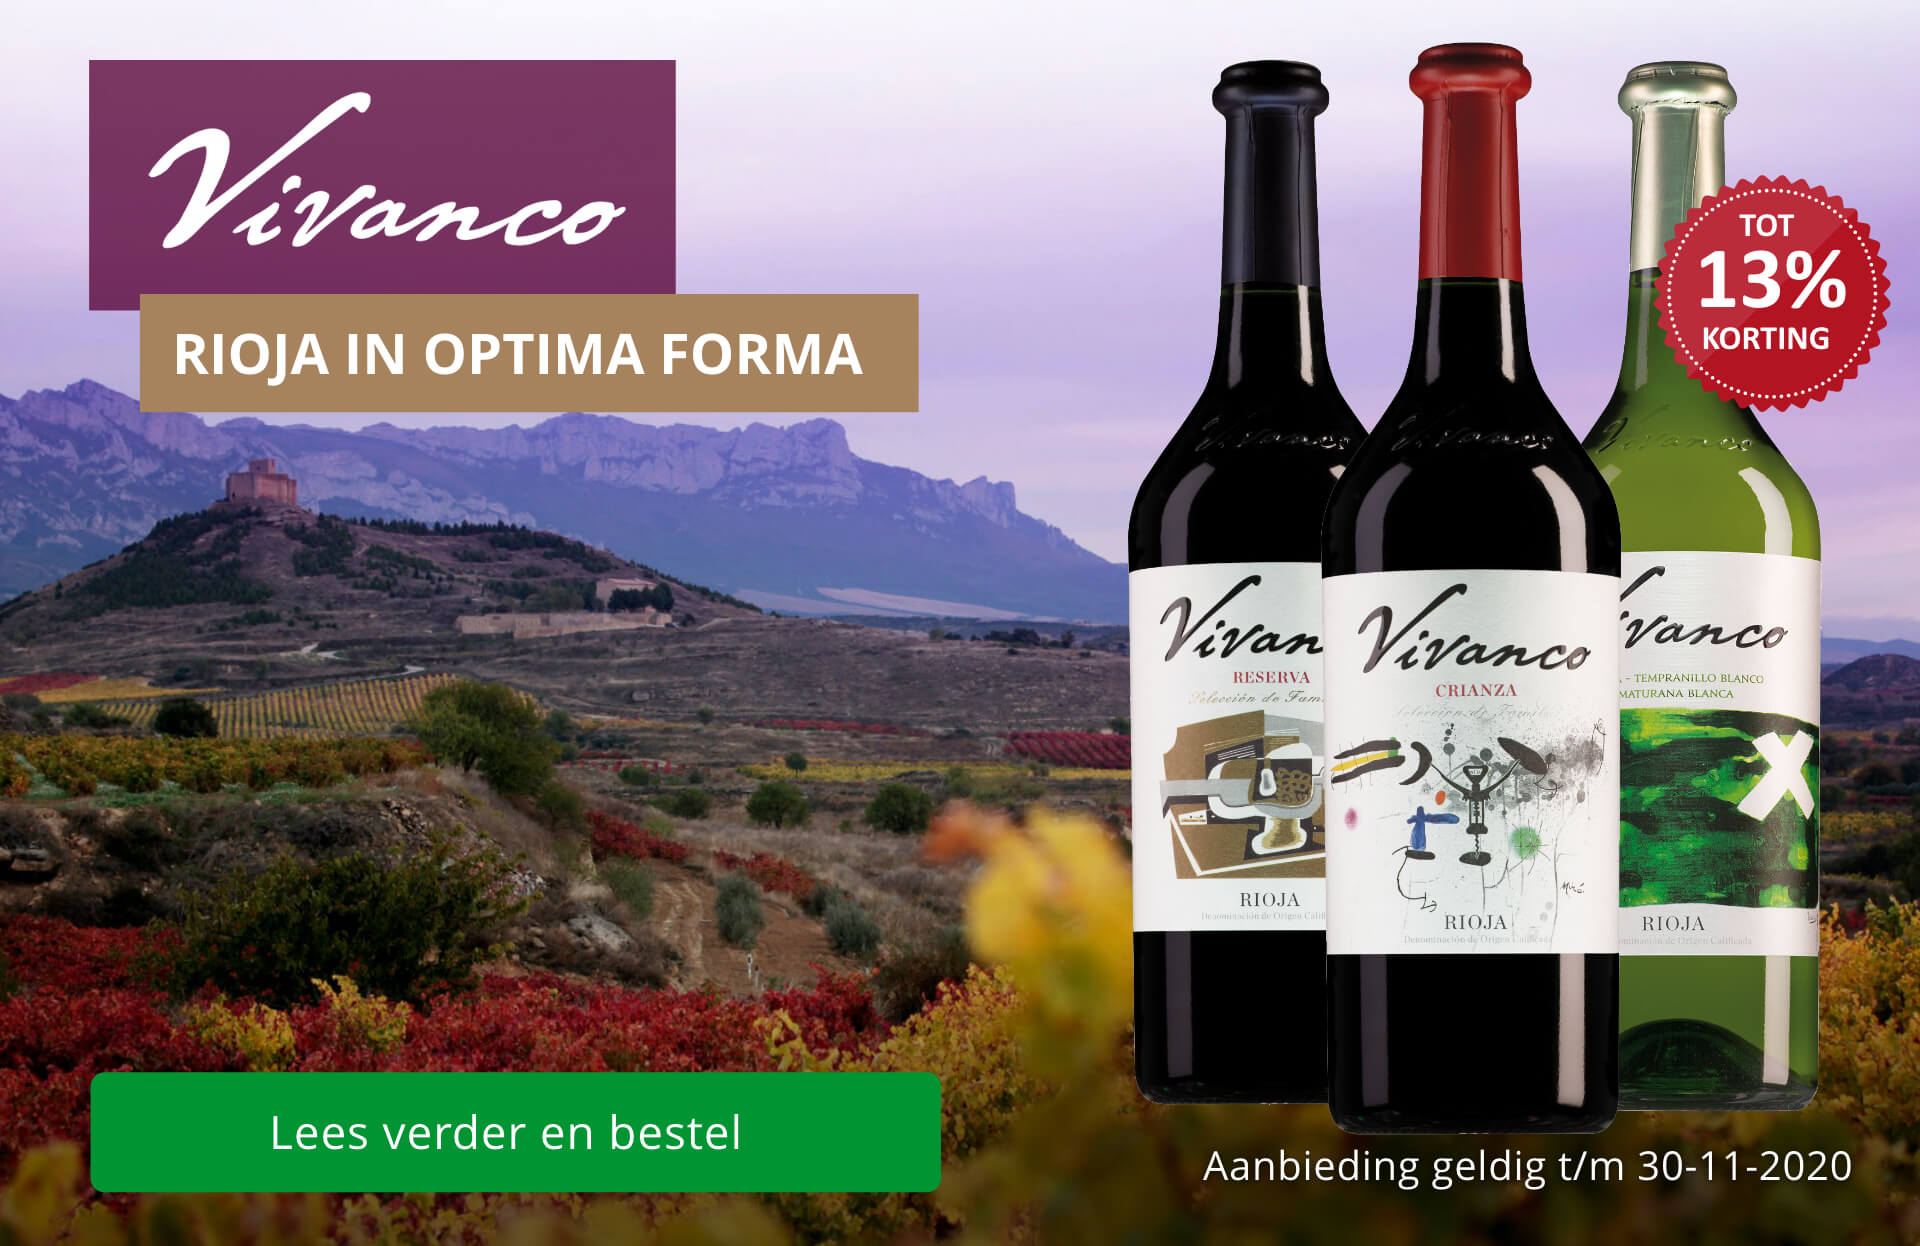 Vivanco: Rioja in optima forma